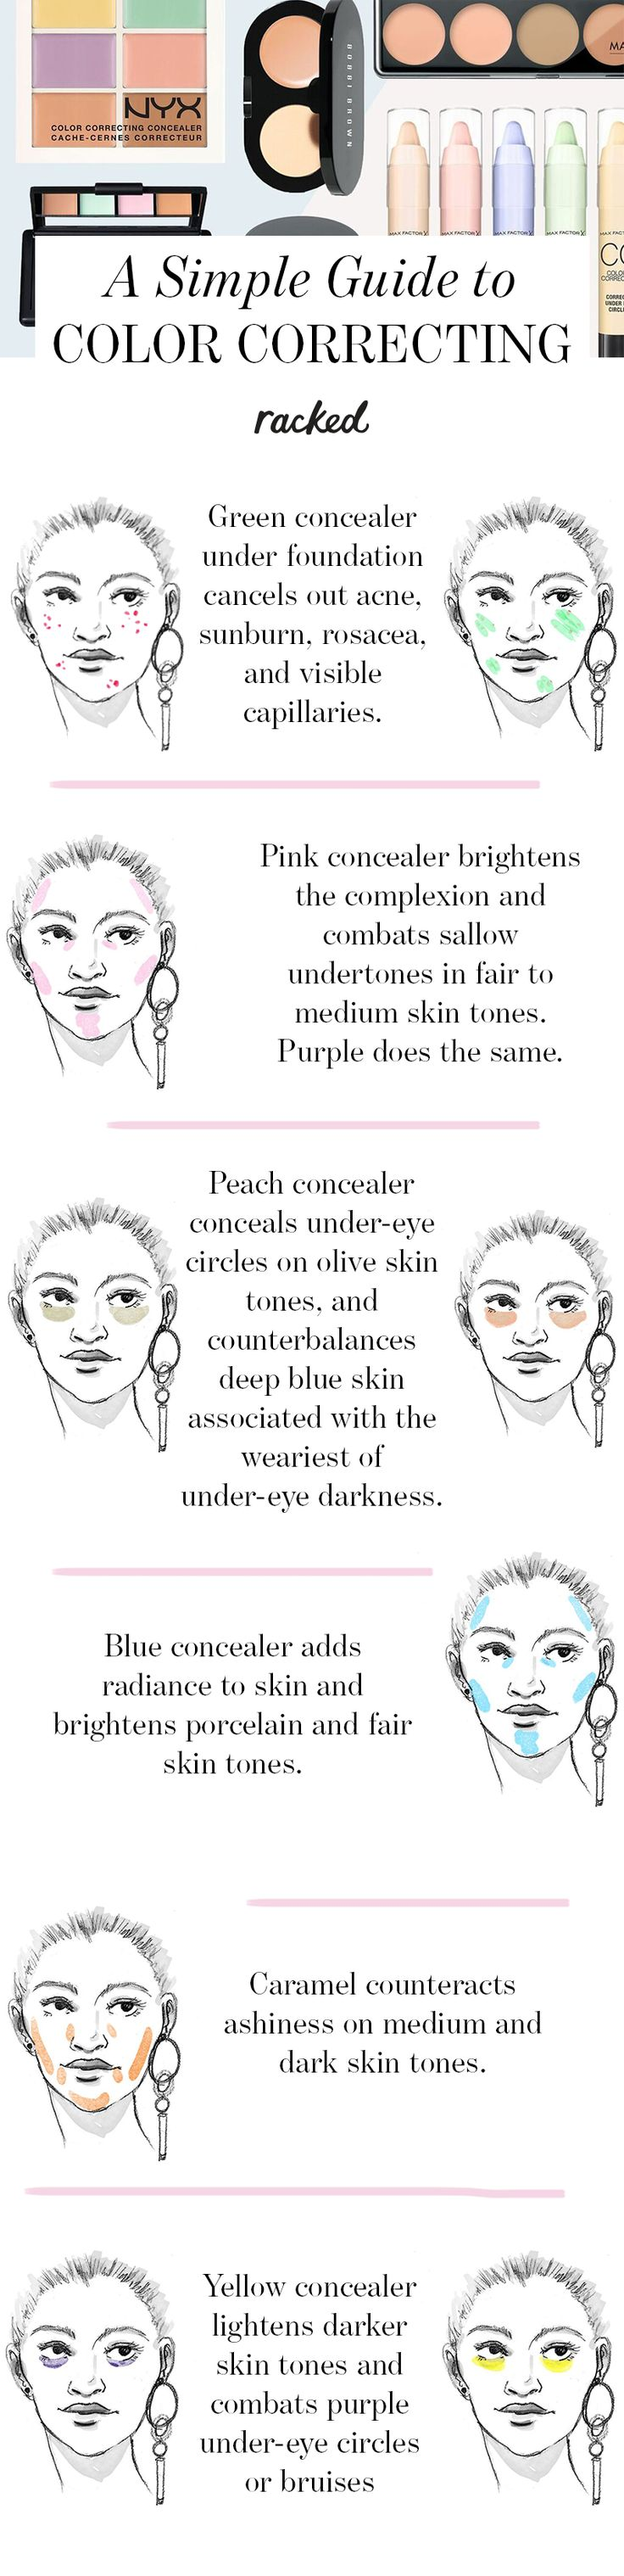 A Simple Guide to Color-Correcting Makeup, and How to Cover Blemishes. // More Tip